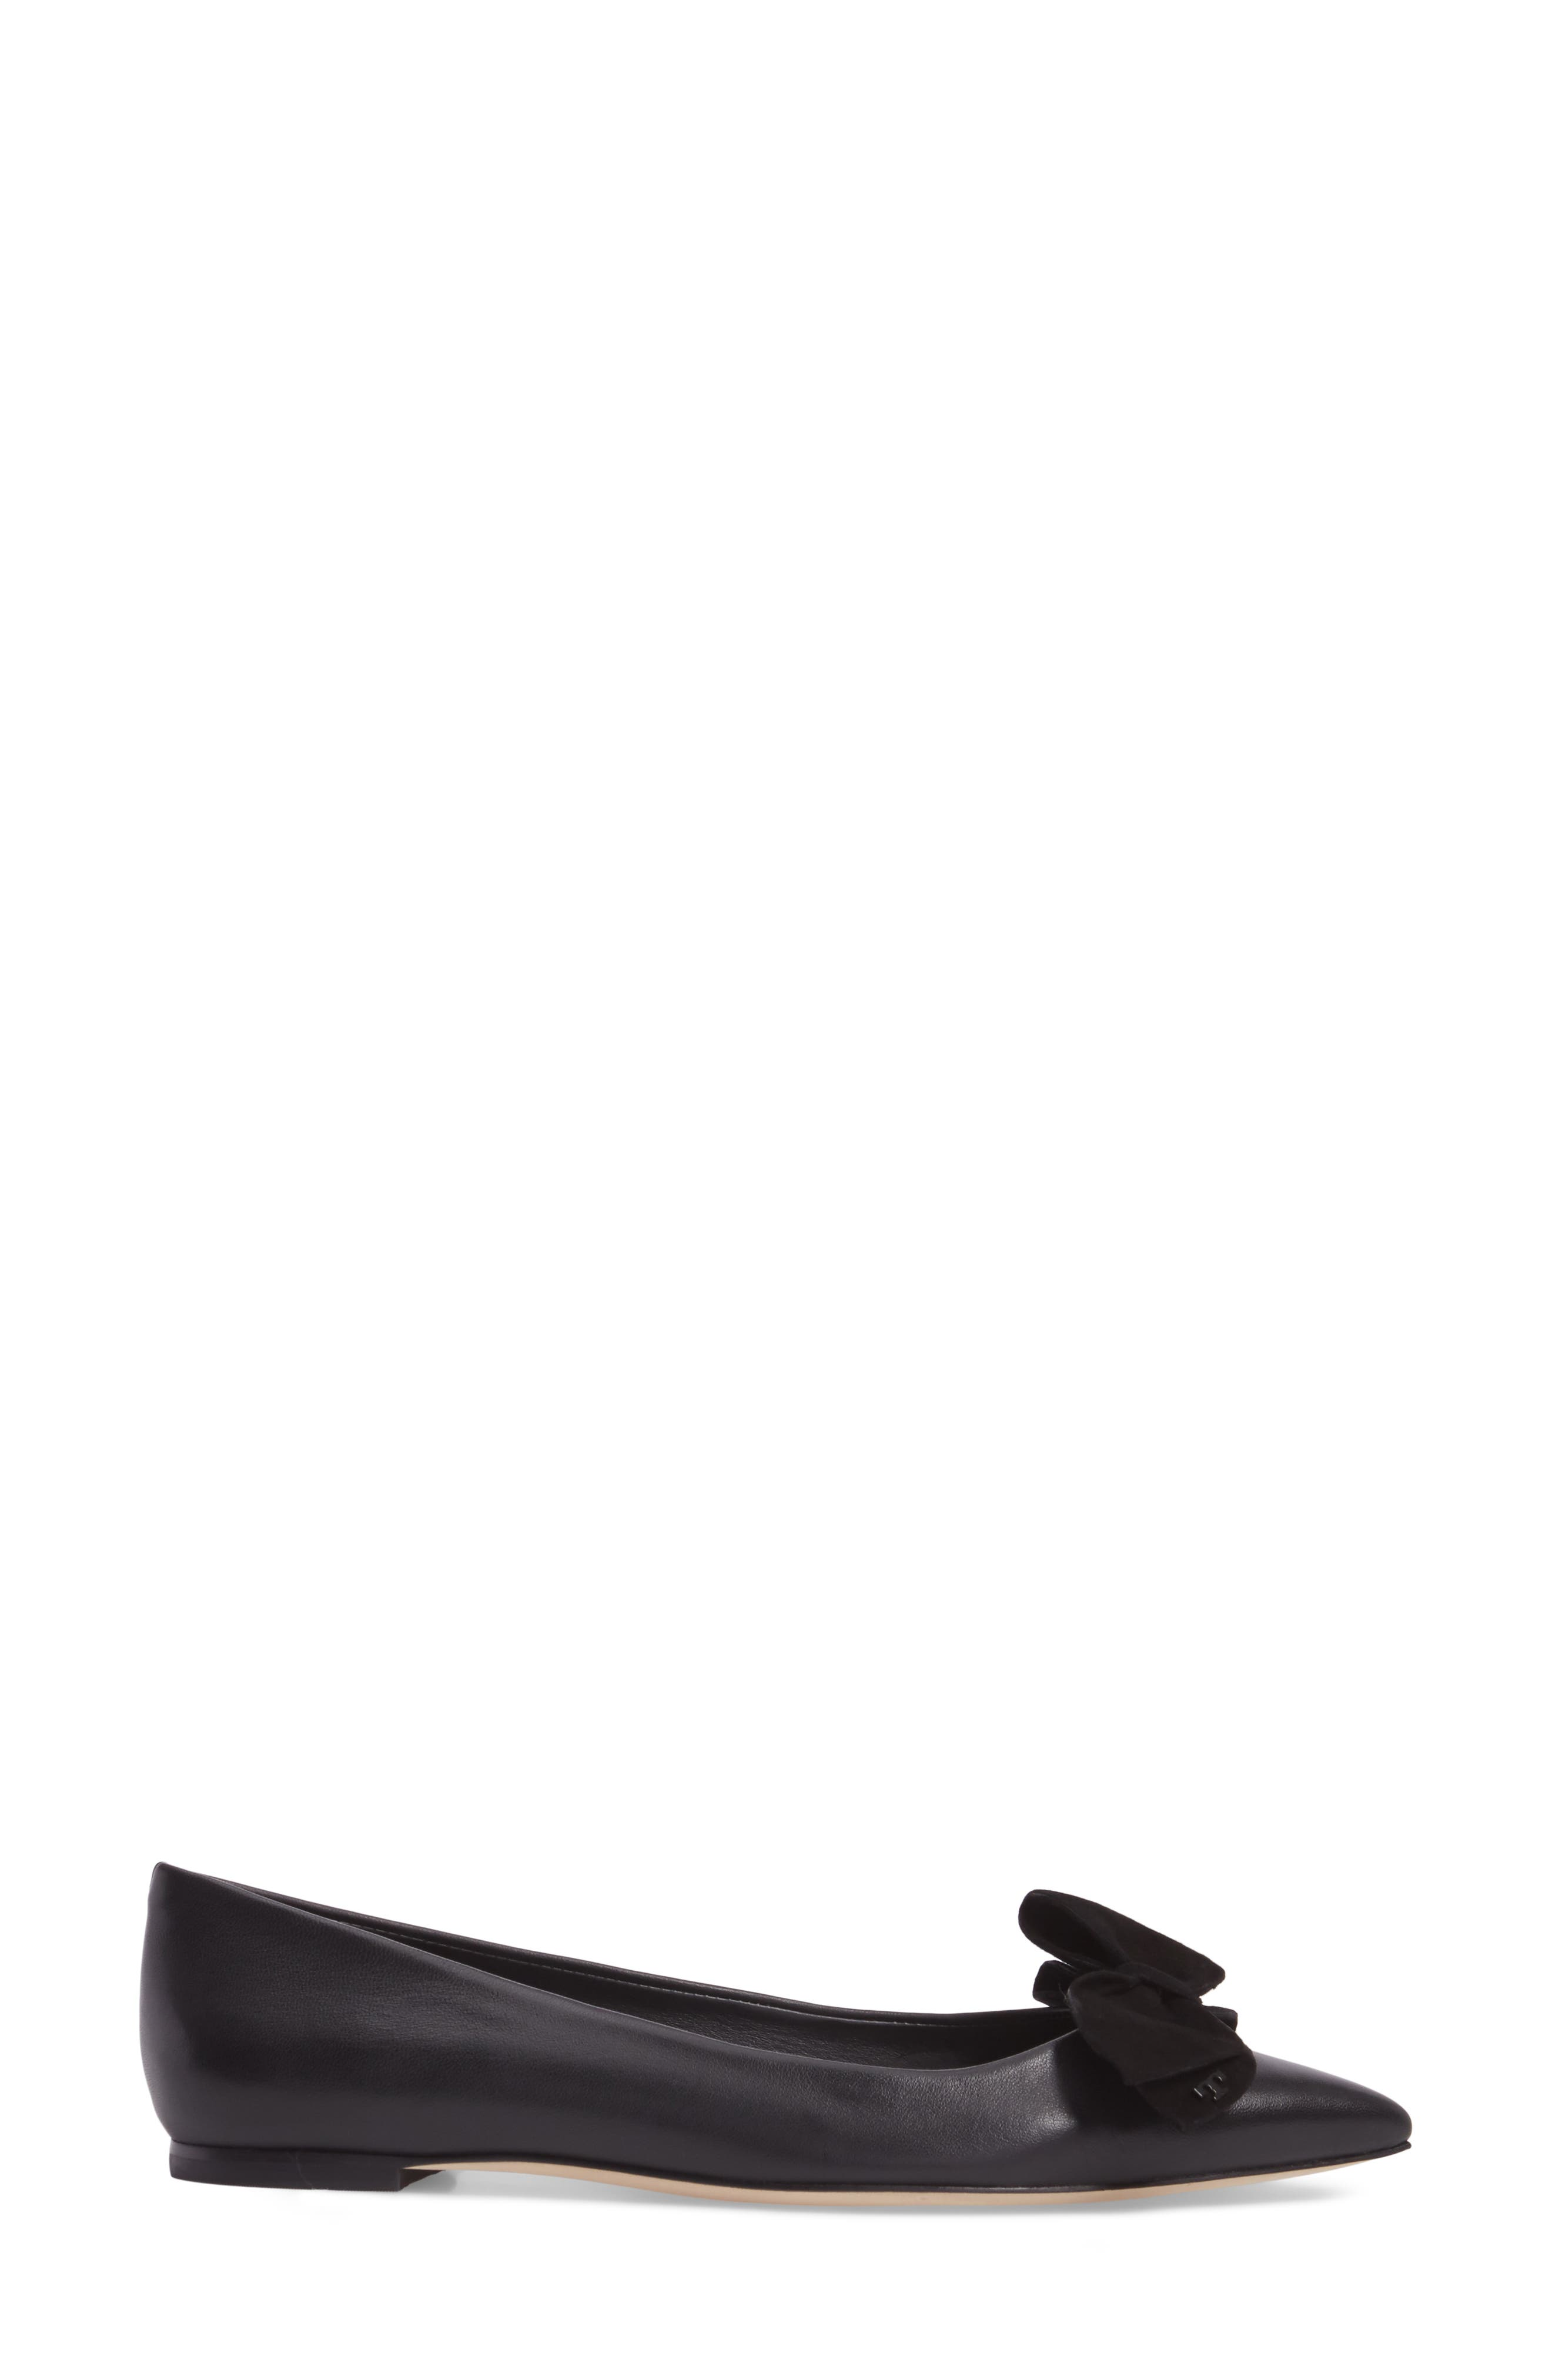 Rosalind Bow Pointy Toe Flat,                             Alternate thumbnail 3, color,                             BLACK LEATHER